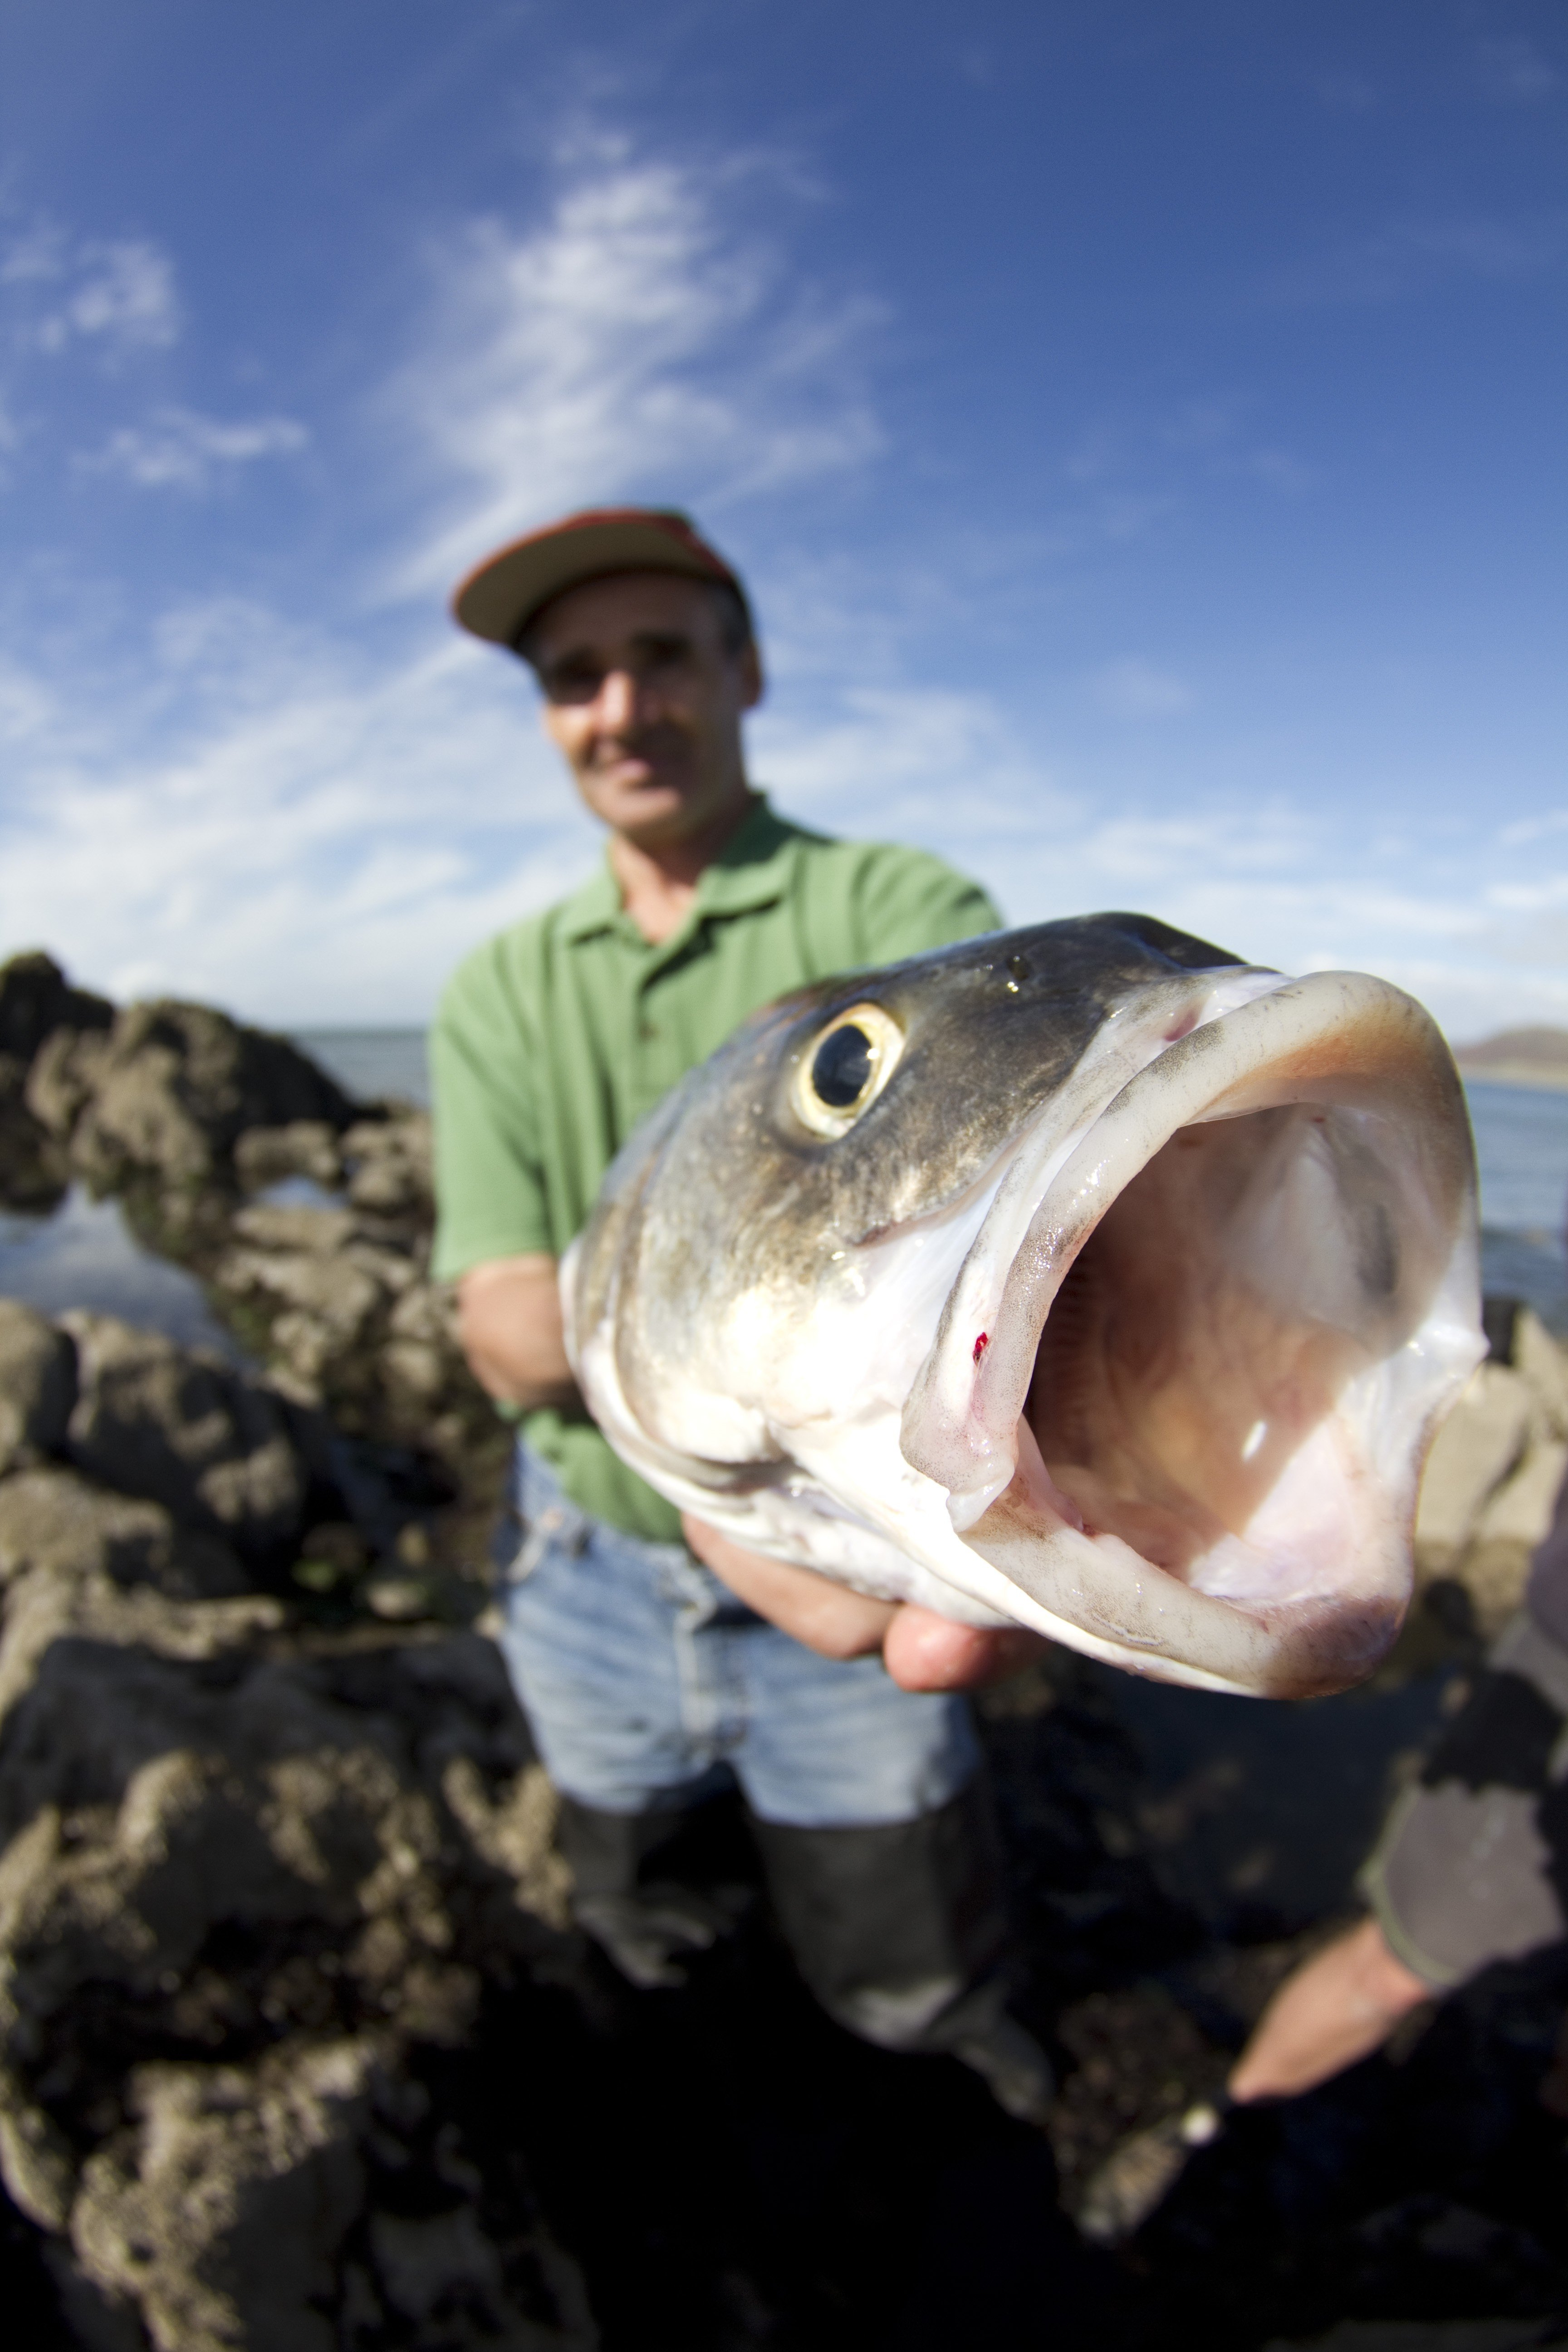 Catch of the day - Fishing in Swansea, Mumbles & Gower